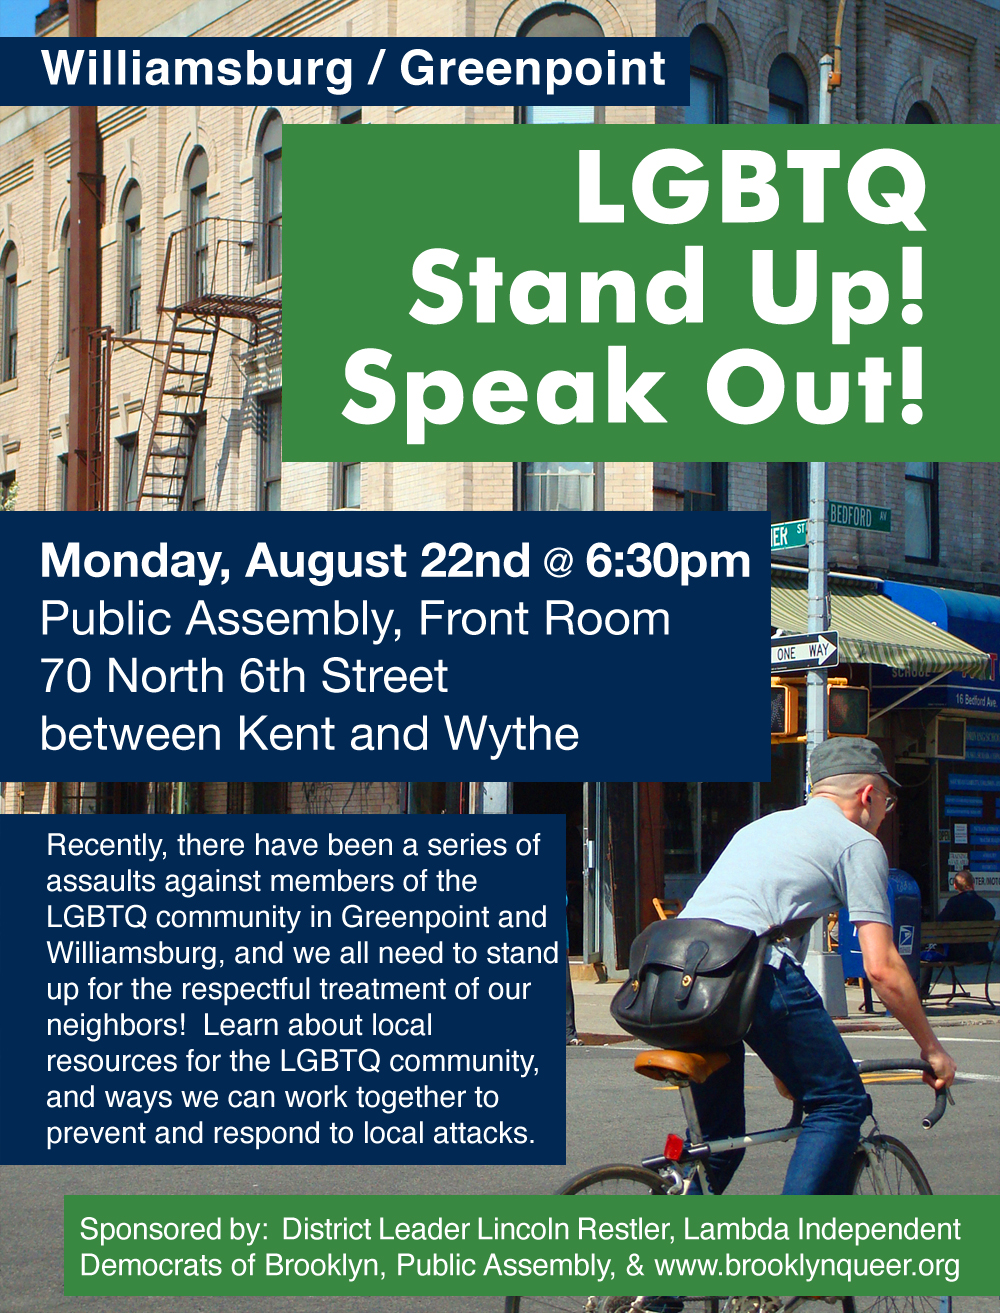 LGBTQ_event_flyer.jpg